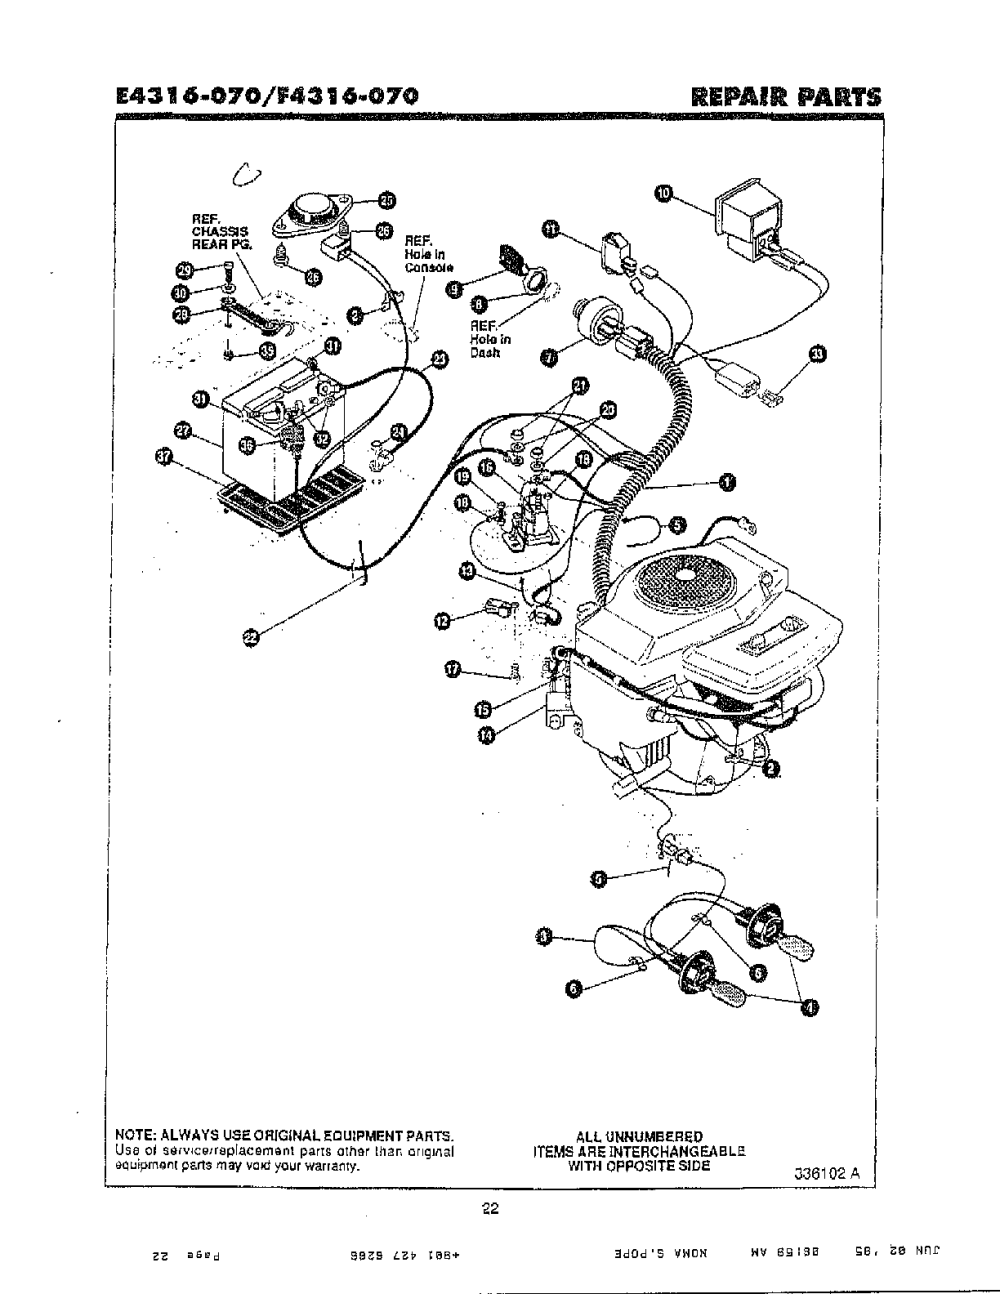 medium resolution of noma model f4316 070 lawn tractor genuine parts lawn tractor electrical system noma lawn tractor wiring diagram